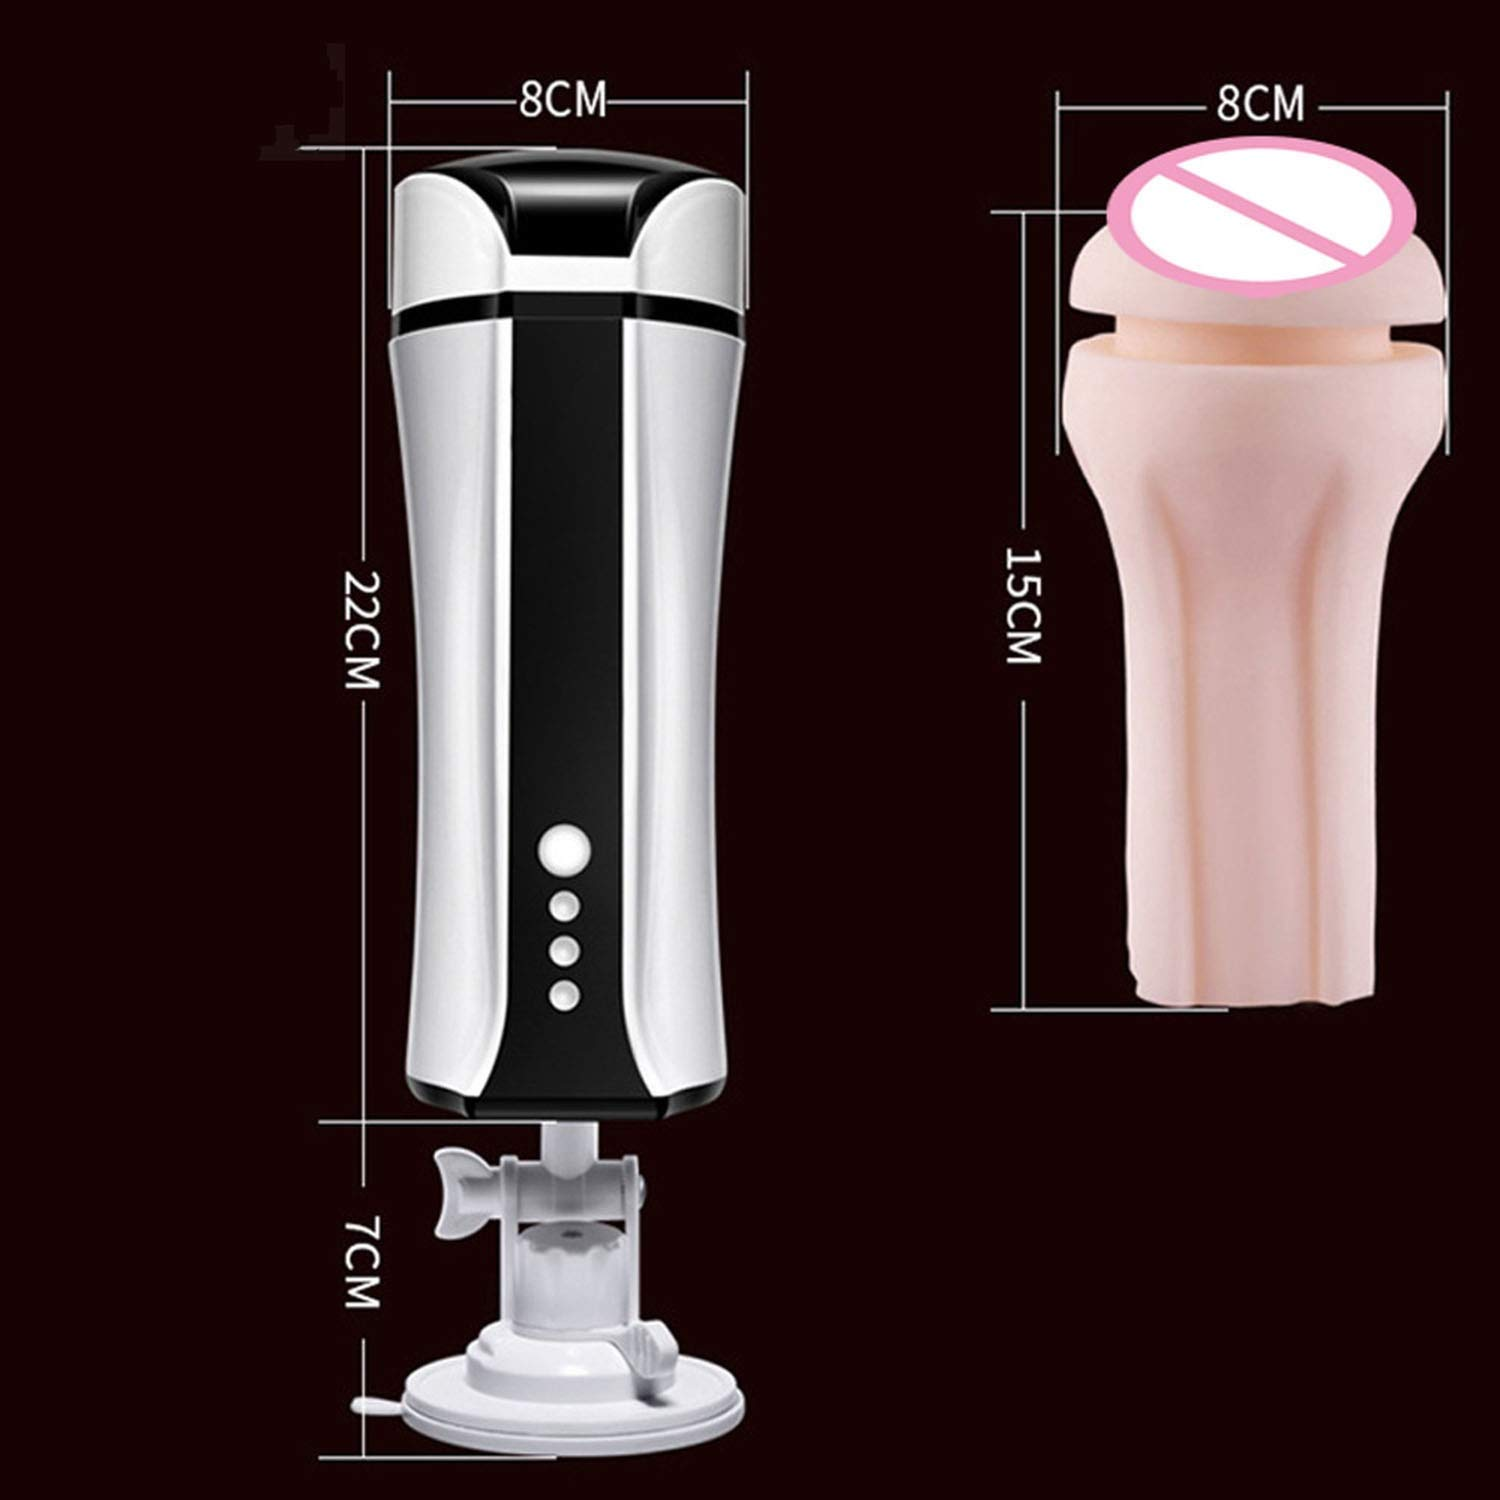 USEXMTY S-Tshirt Male Masturbator Automatic Intelligent Heating Male Hands Free Masturbator USB Rechargeable Suction Cup Real Vagina Adult Sexxx-Toys for Men,as Picture Ingenious by USEXMTY S-Tshirt (Image #4)